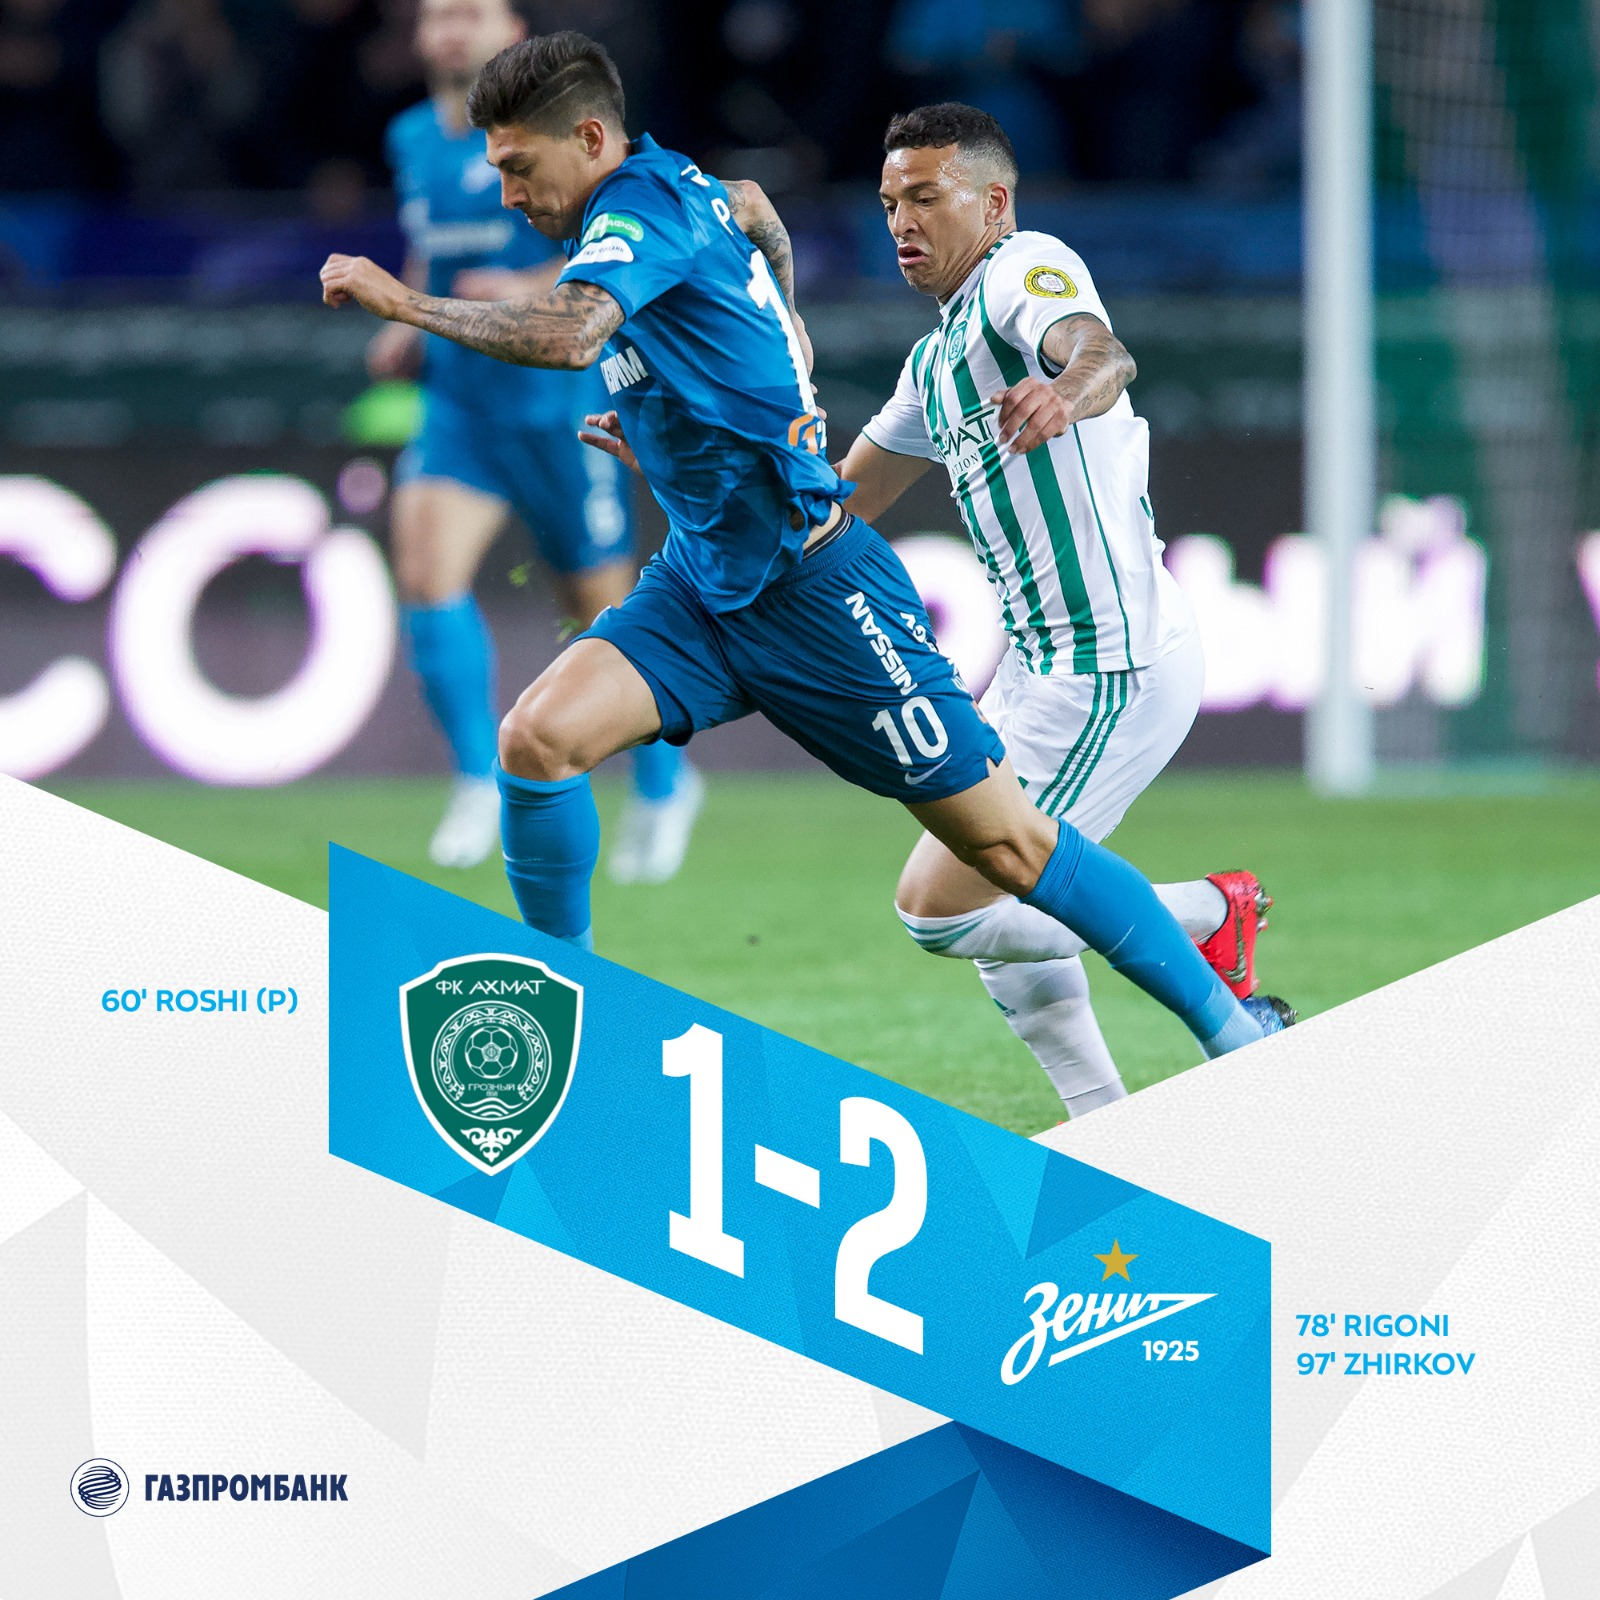 Akhmat 1-2 Zenit: Match Report